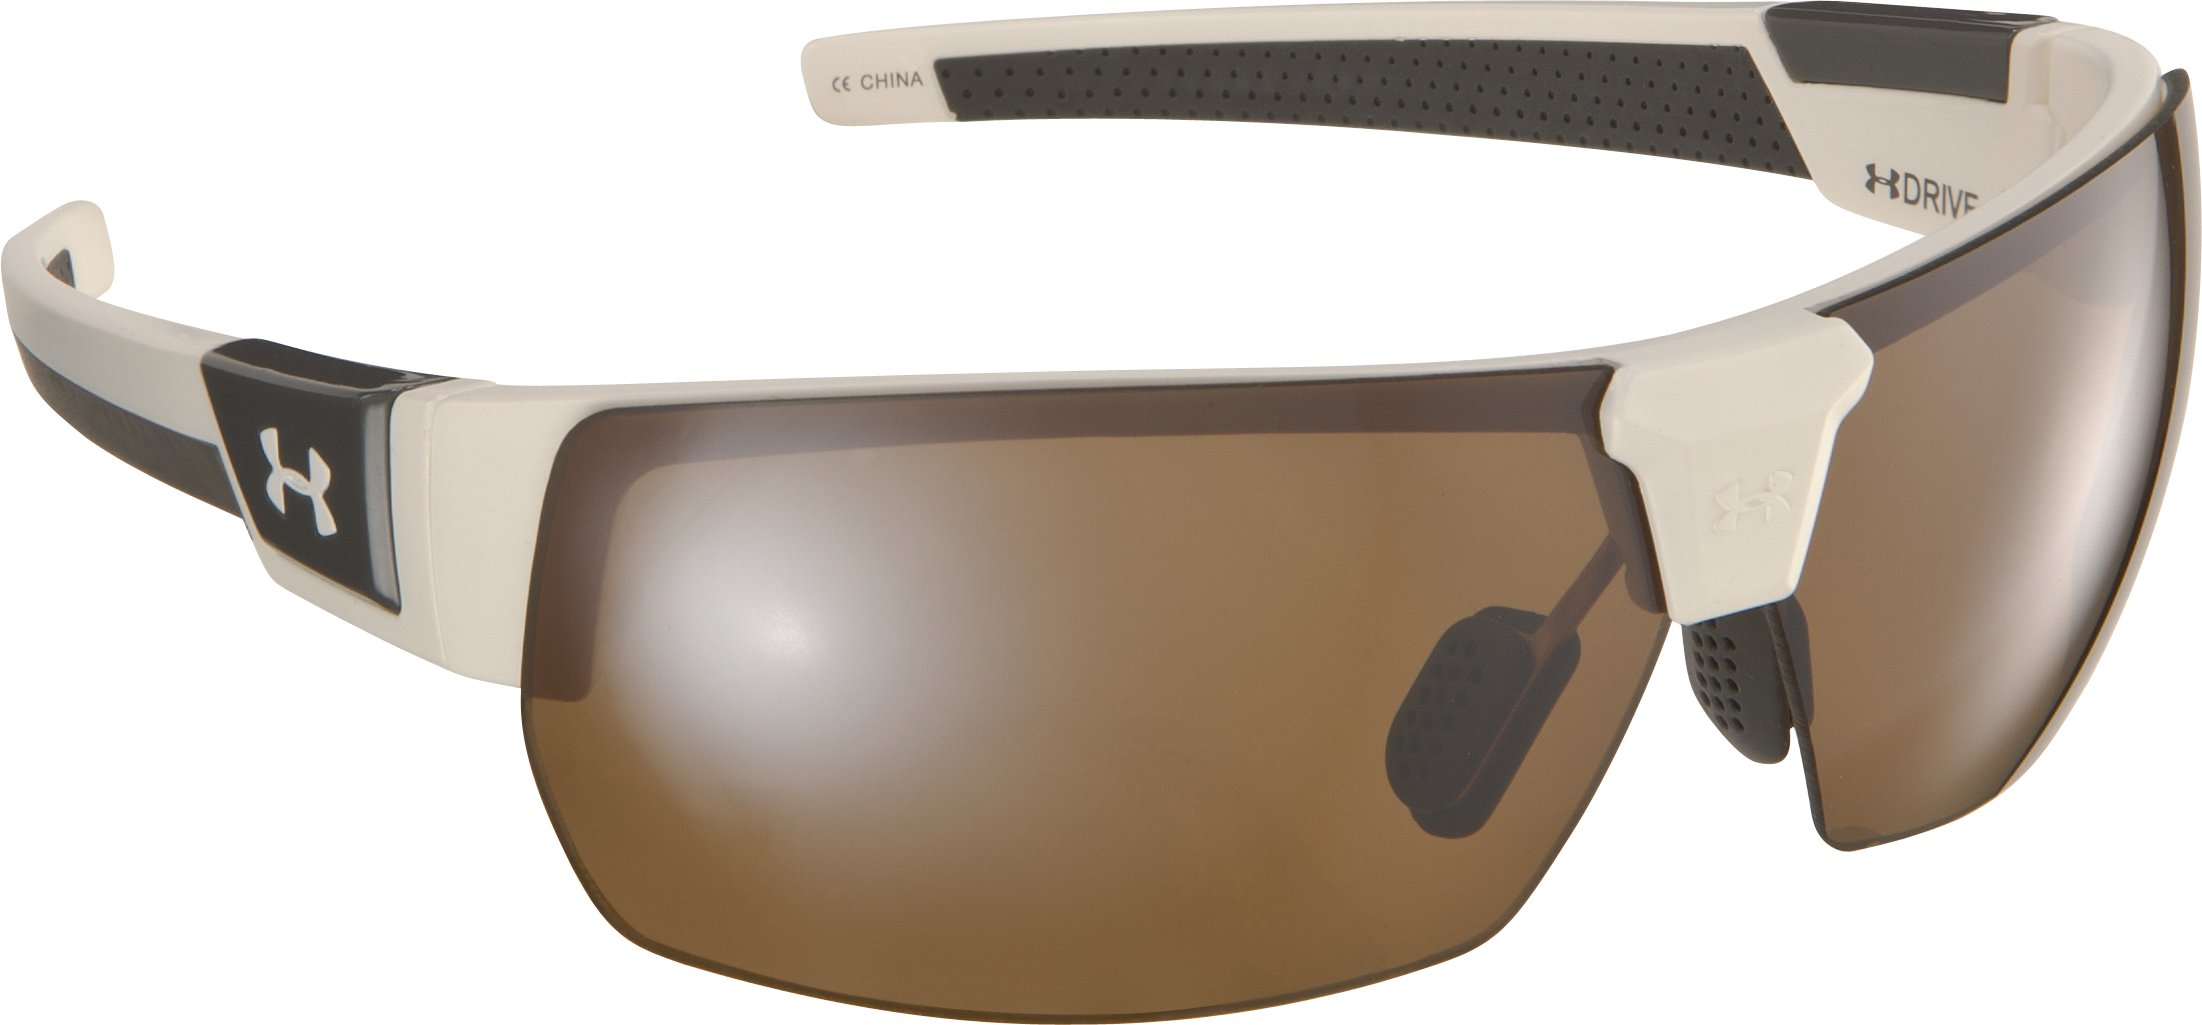 UA Drive Multiflection™ Sunglasses, White